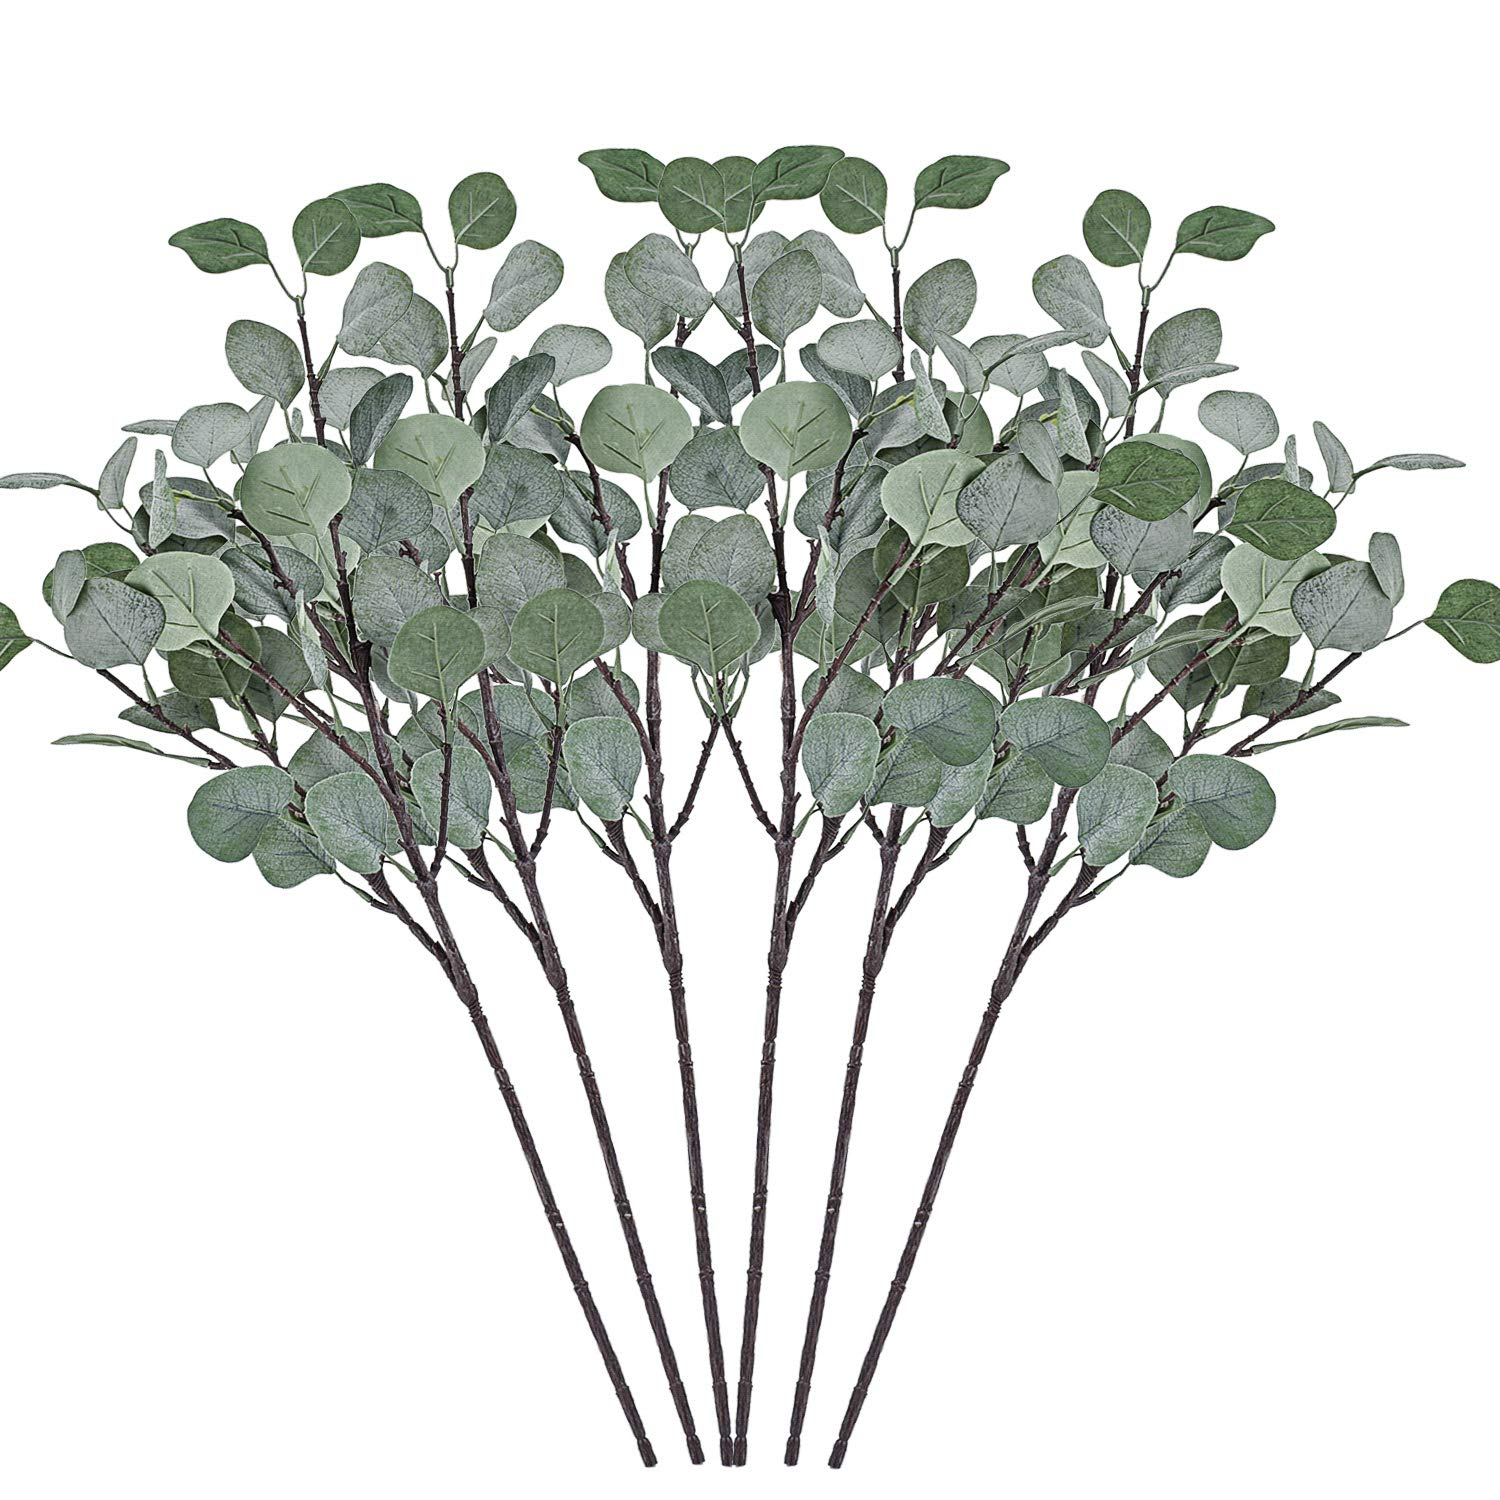 Cyanbamboo-6pcs-Artificial-Leaves-Long-Branches-Plants-Fake-Dollar-Eucalyptus-Leaf-Spray-for-Home-Party-Wedding-Office-Shop-Decor-25-Inch